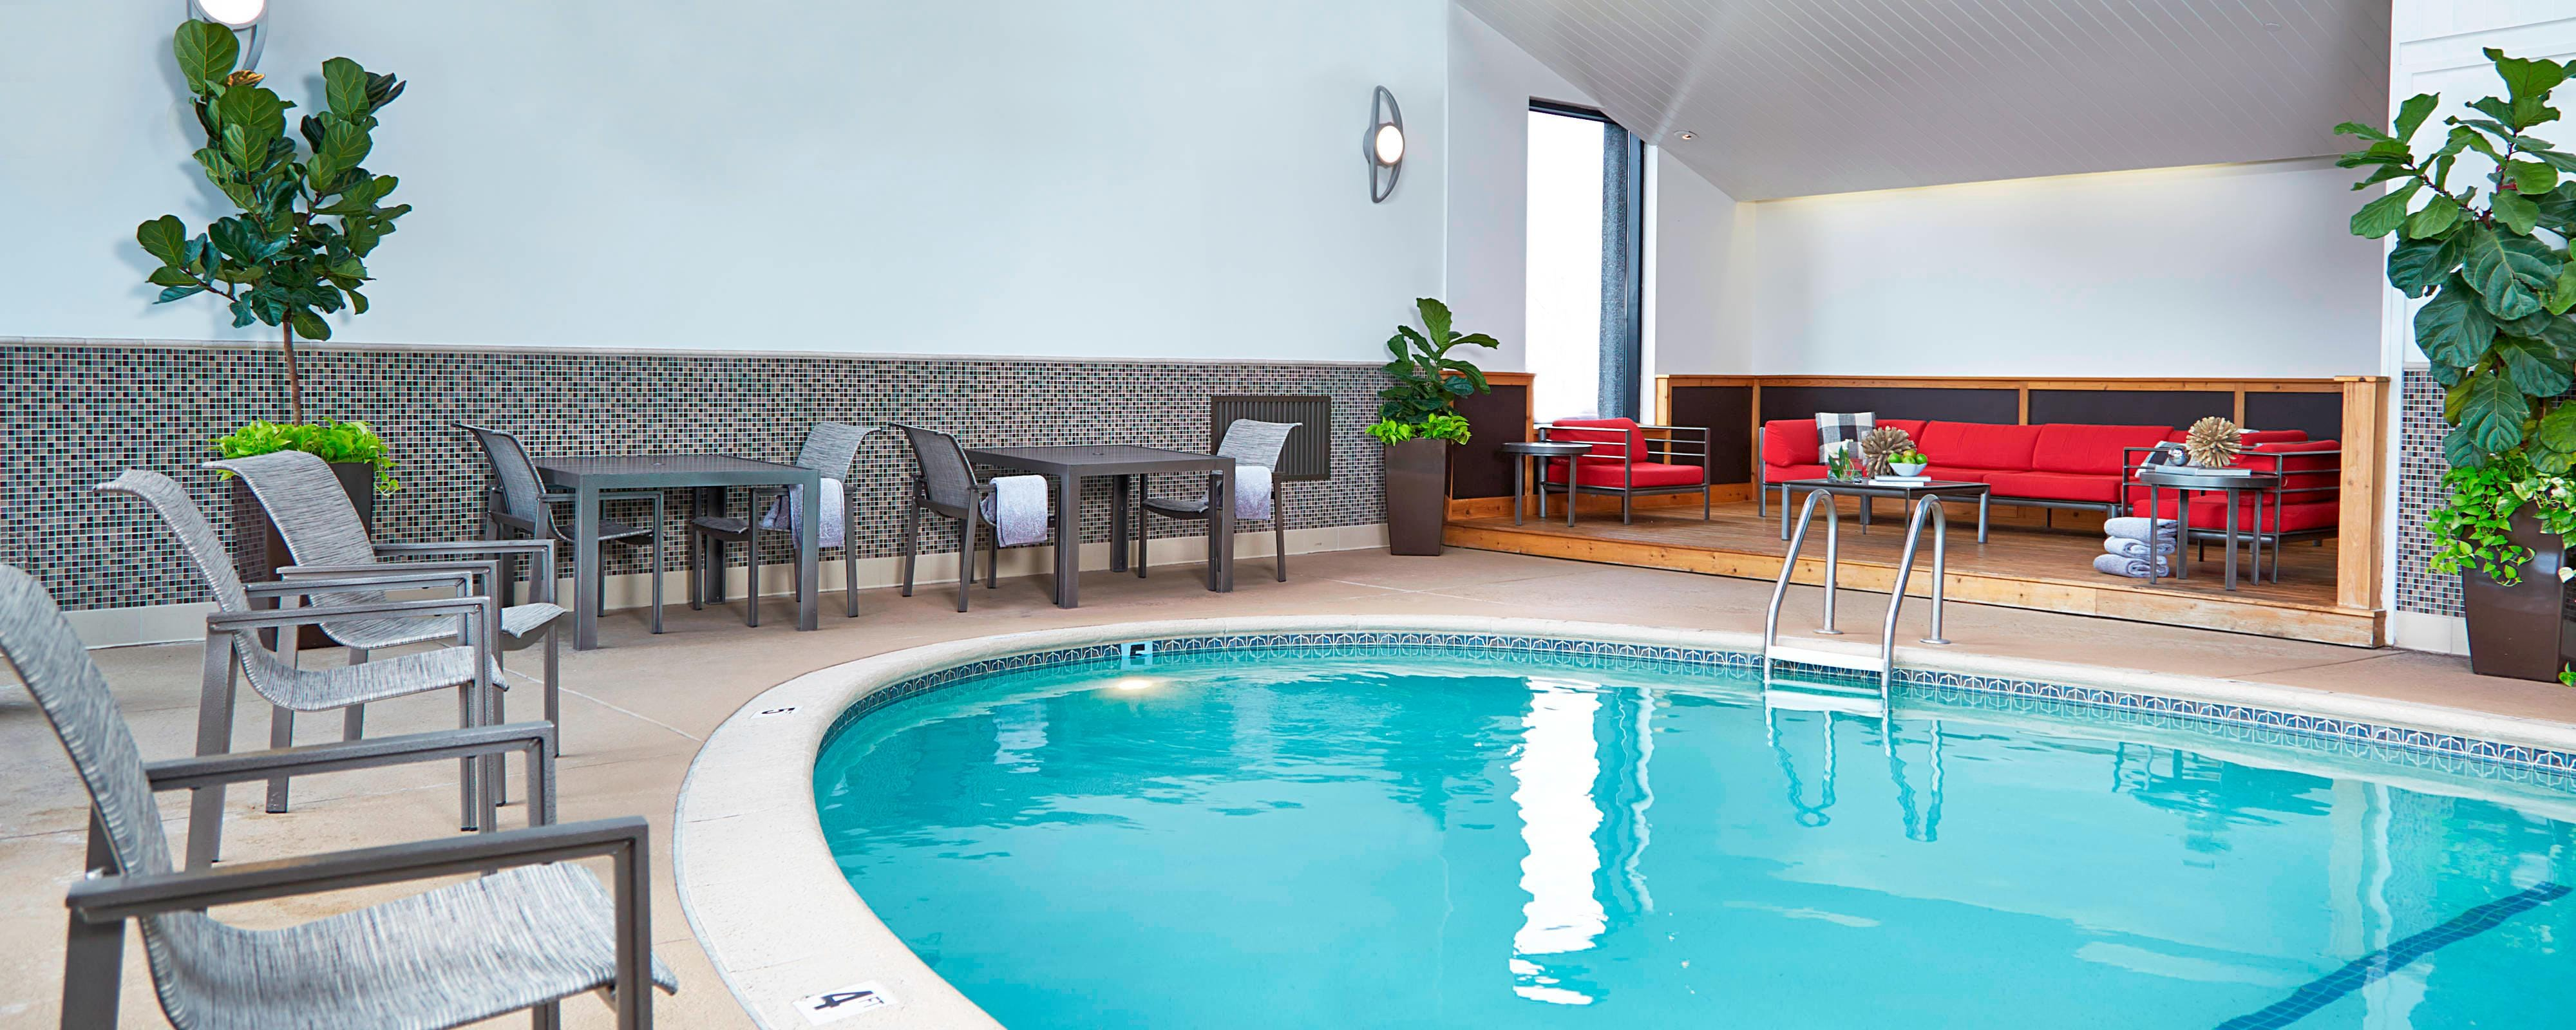 St Louis Mo Hotels With Indoor Pool Renaissance St Louis Airport Hotel